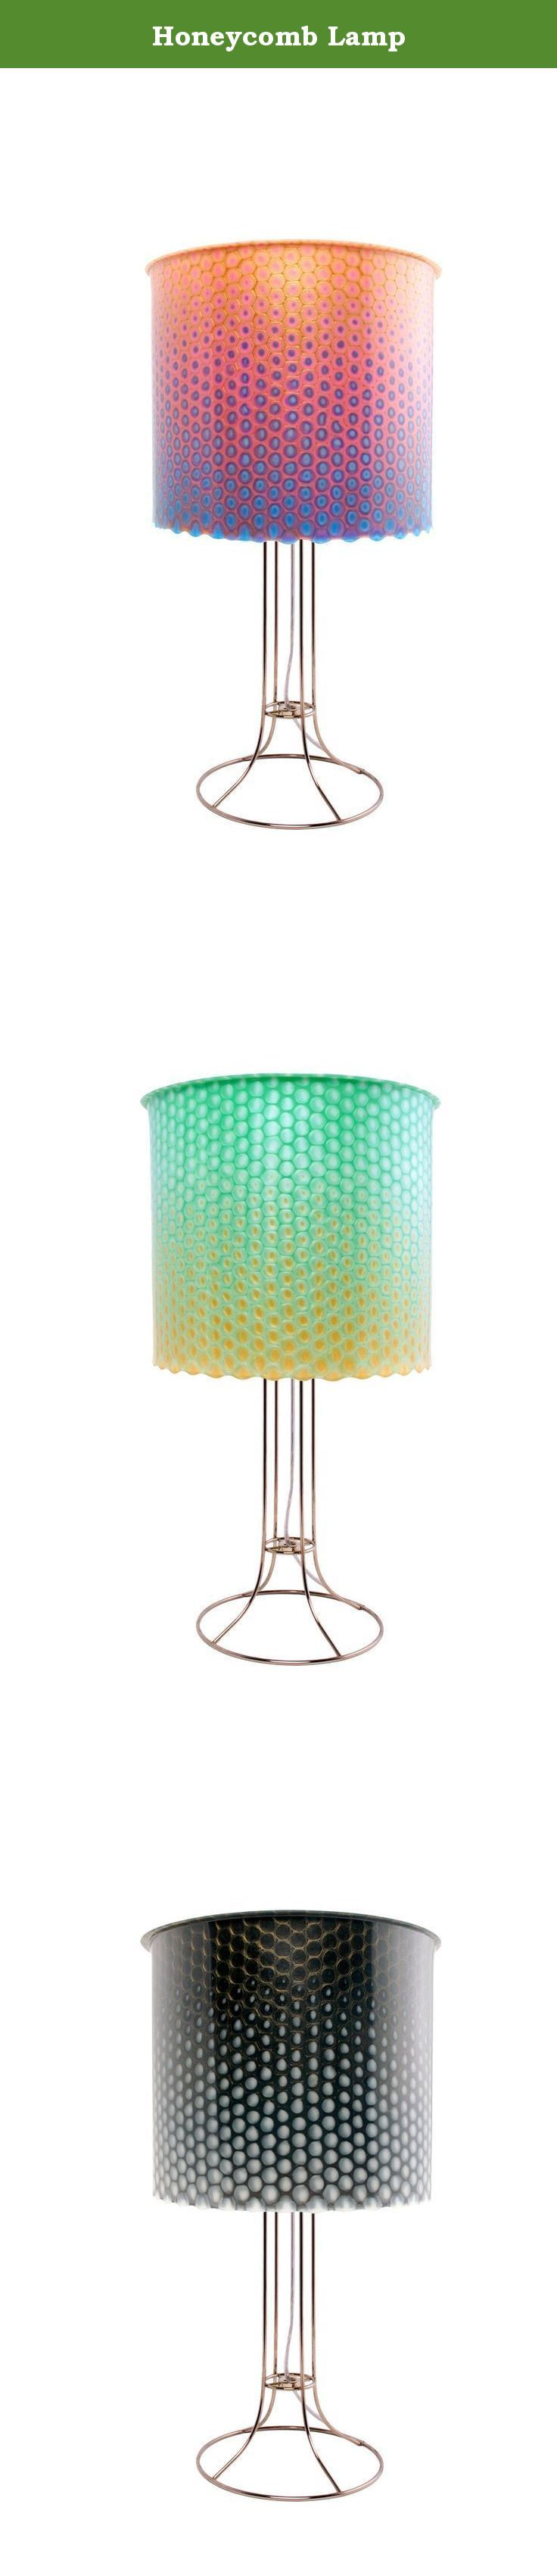 Honeycomb Lamp. The beautiful array of cell-like structures with a luscious center of metamorphosing color. How could bees be wrong! Our techniques for layering color neutralize the sterile effect of compact fluorescent bulbs, instead emoting a light that is warm and inviting, making high efficiency bulbs the ideal and responsible choice. We have mastered a combination of elegance and efficiency.